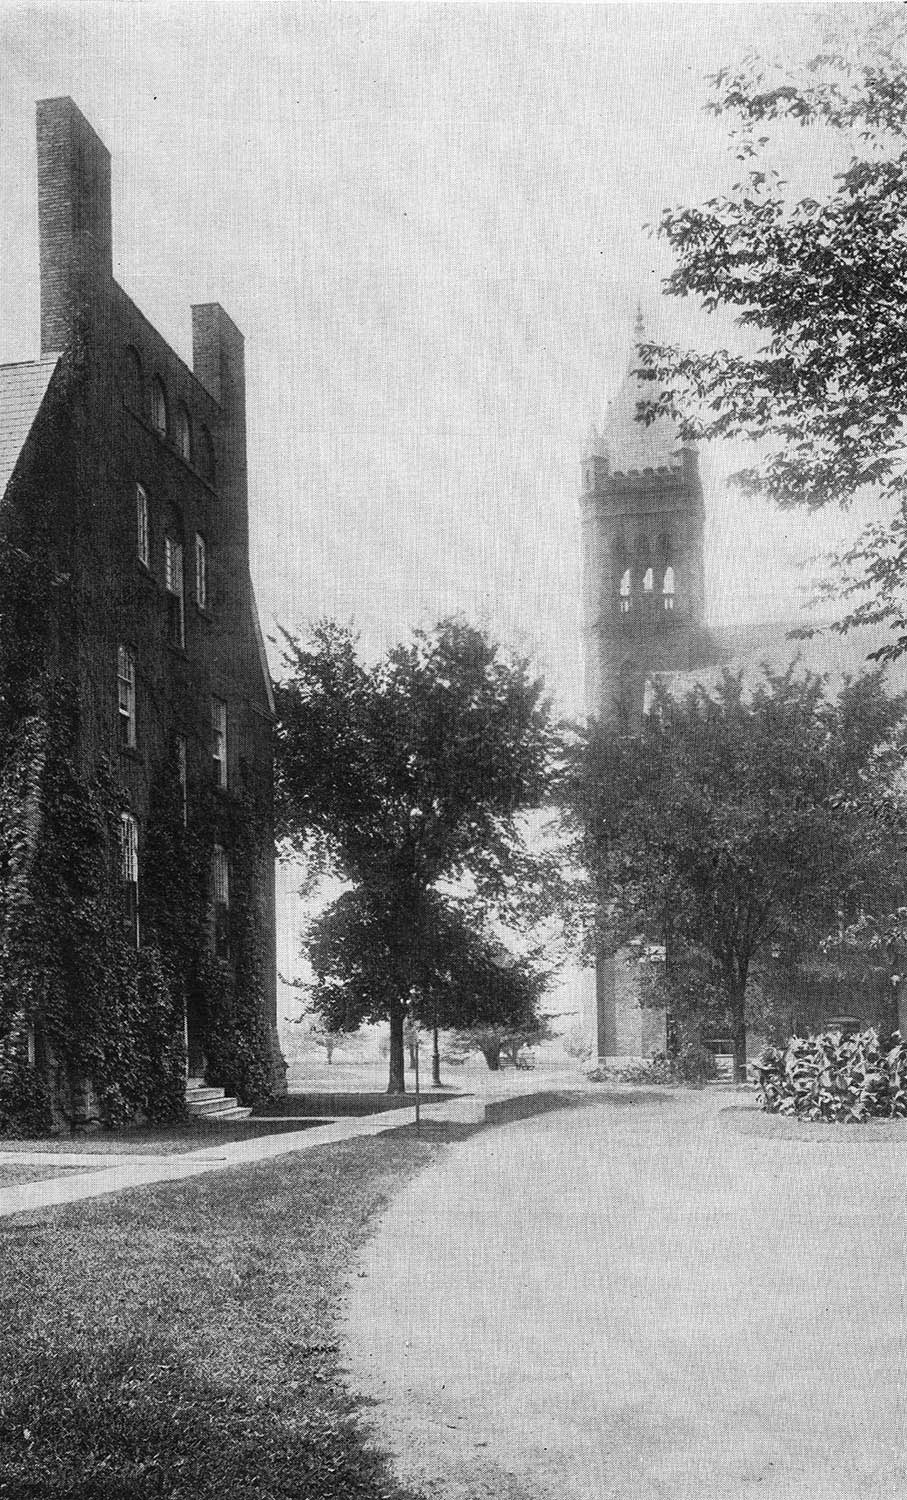 On the right: the chapel at the Girls' Training School, as one would see it from the front entrance.